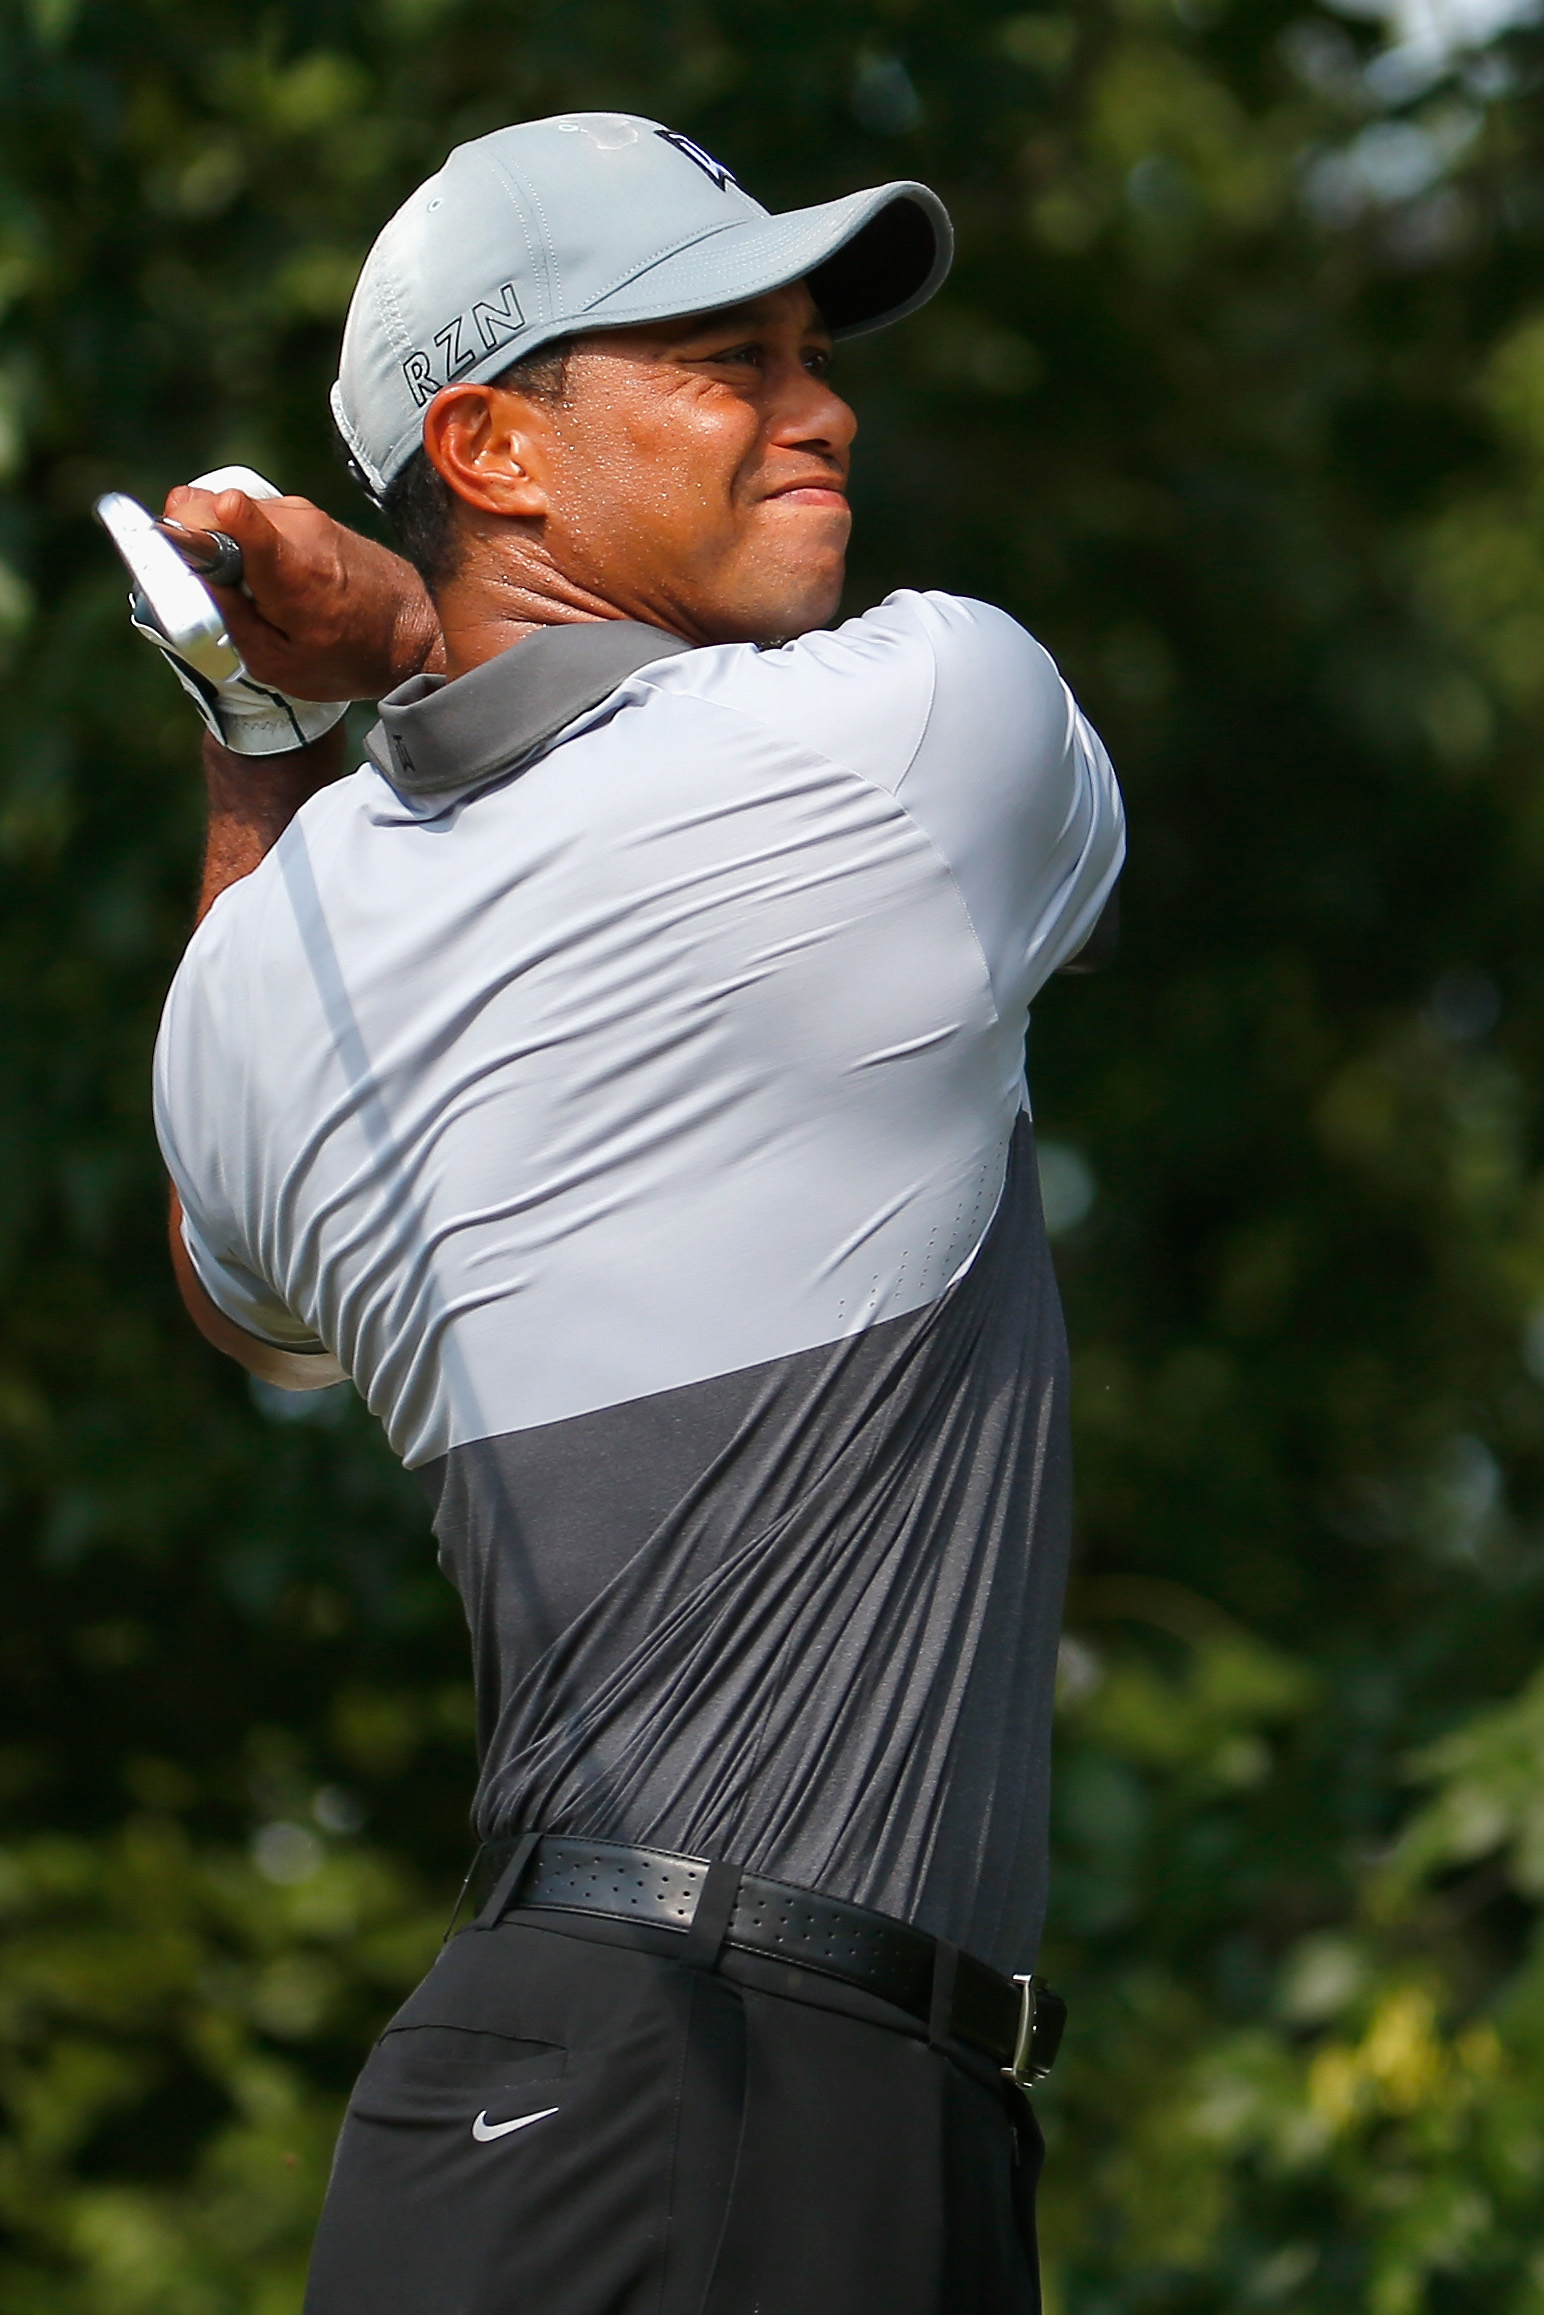 Tiger Woods makes the scene at Jack Nicklaus' Ryder Cup party